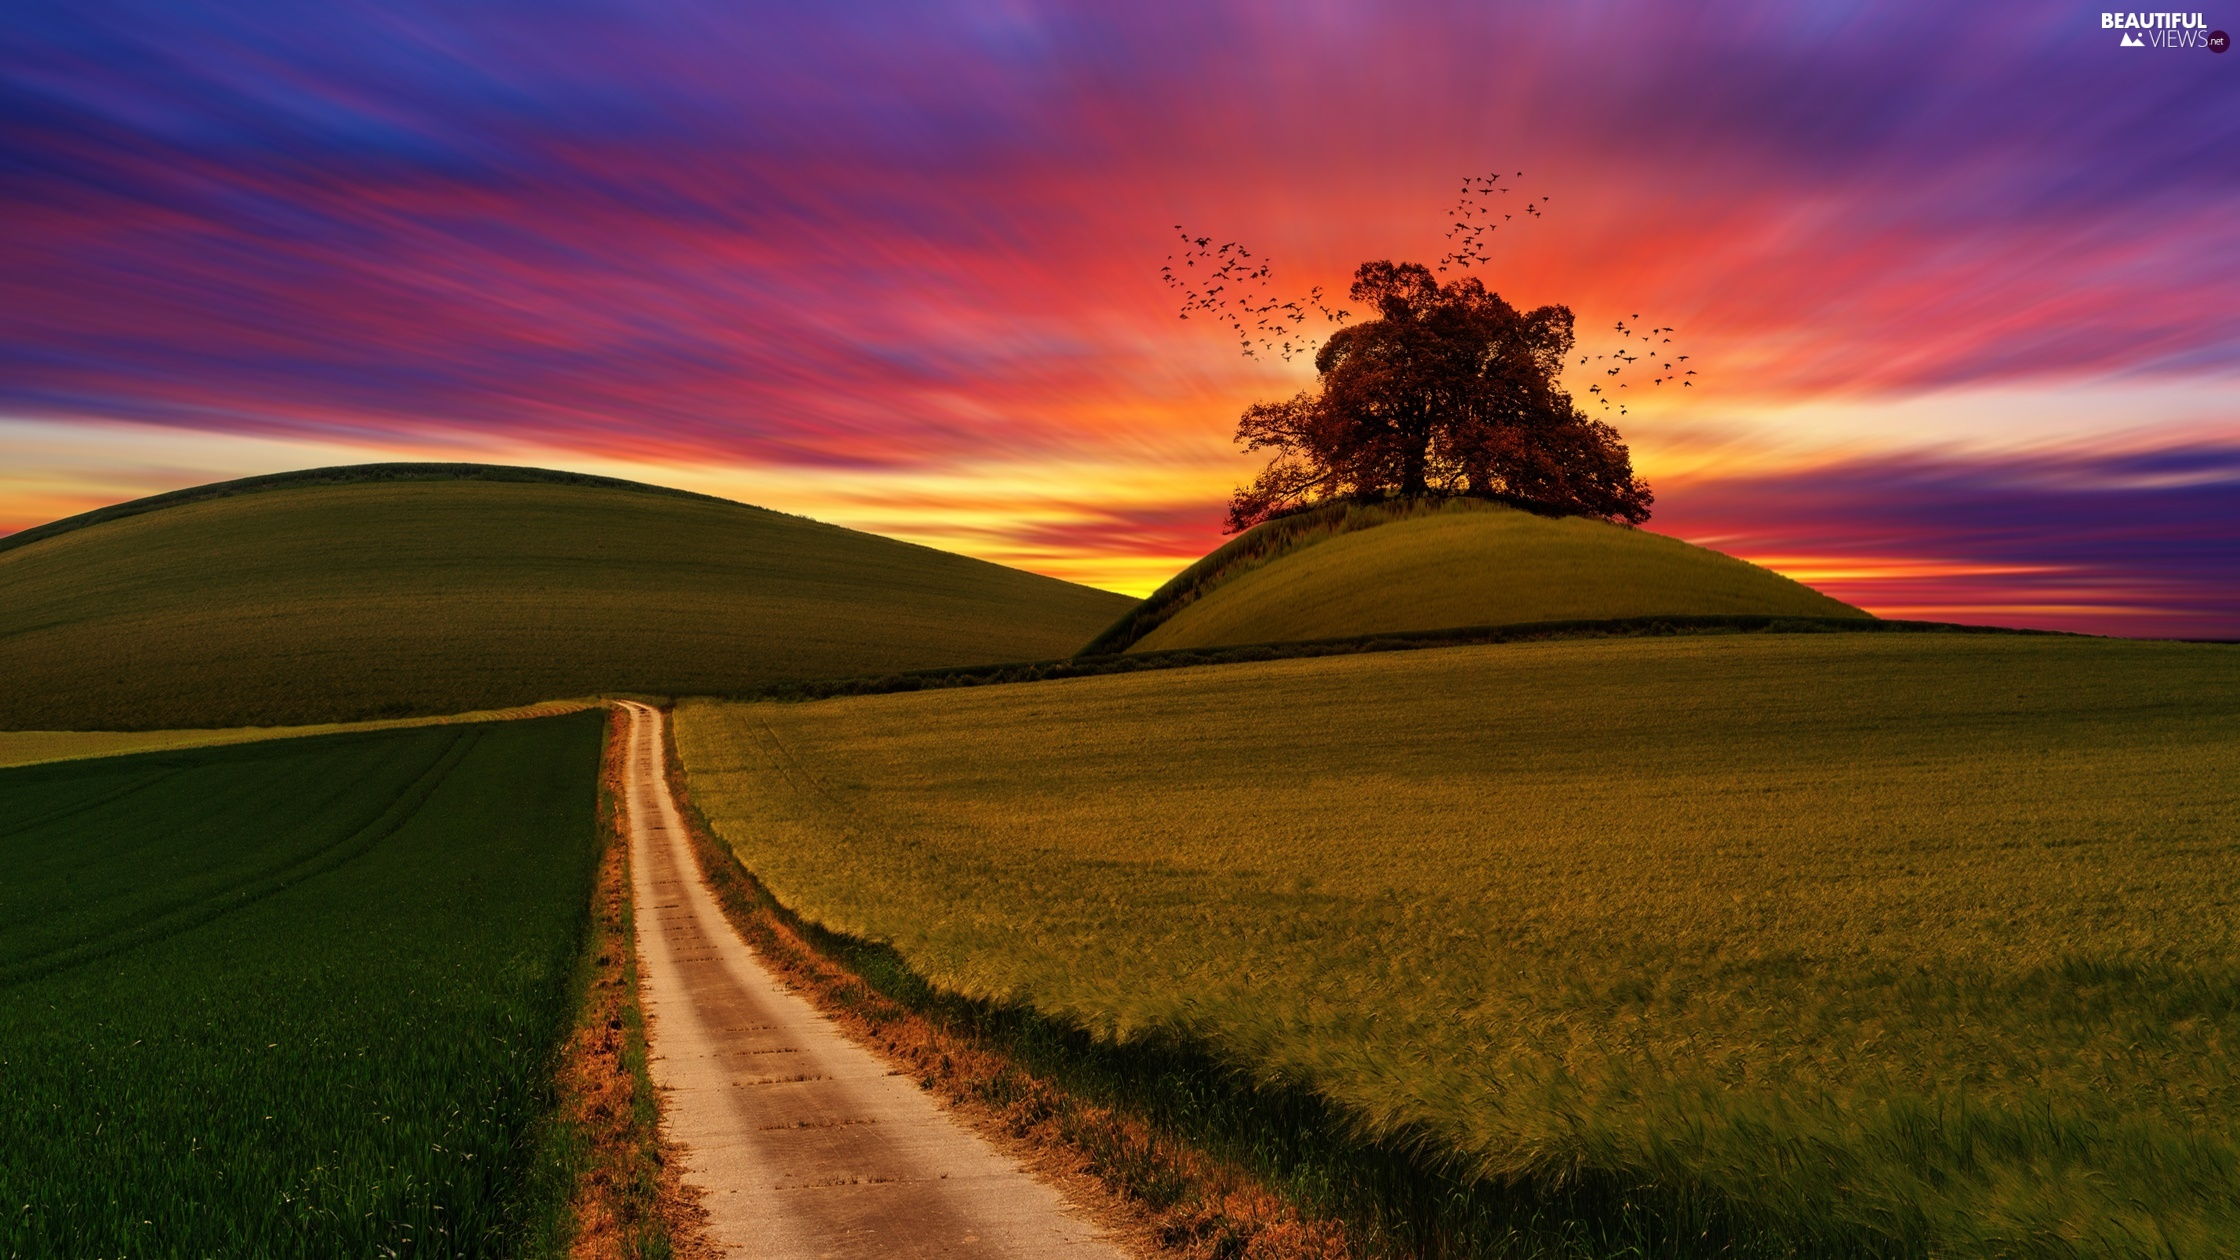 The Hills, field, birds, medows, Way, trees, Great Sunsets